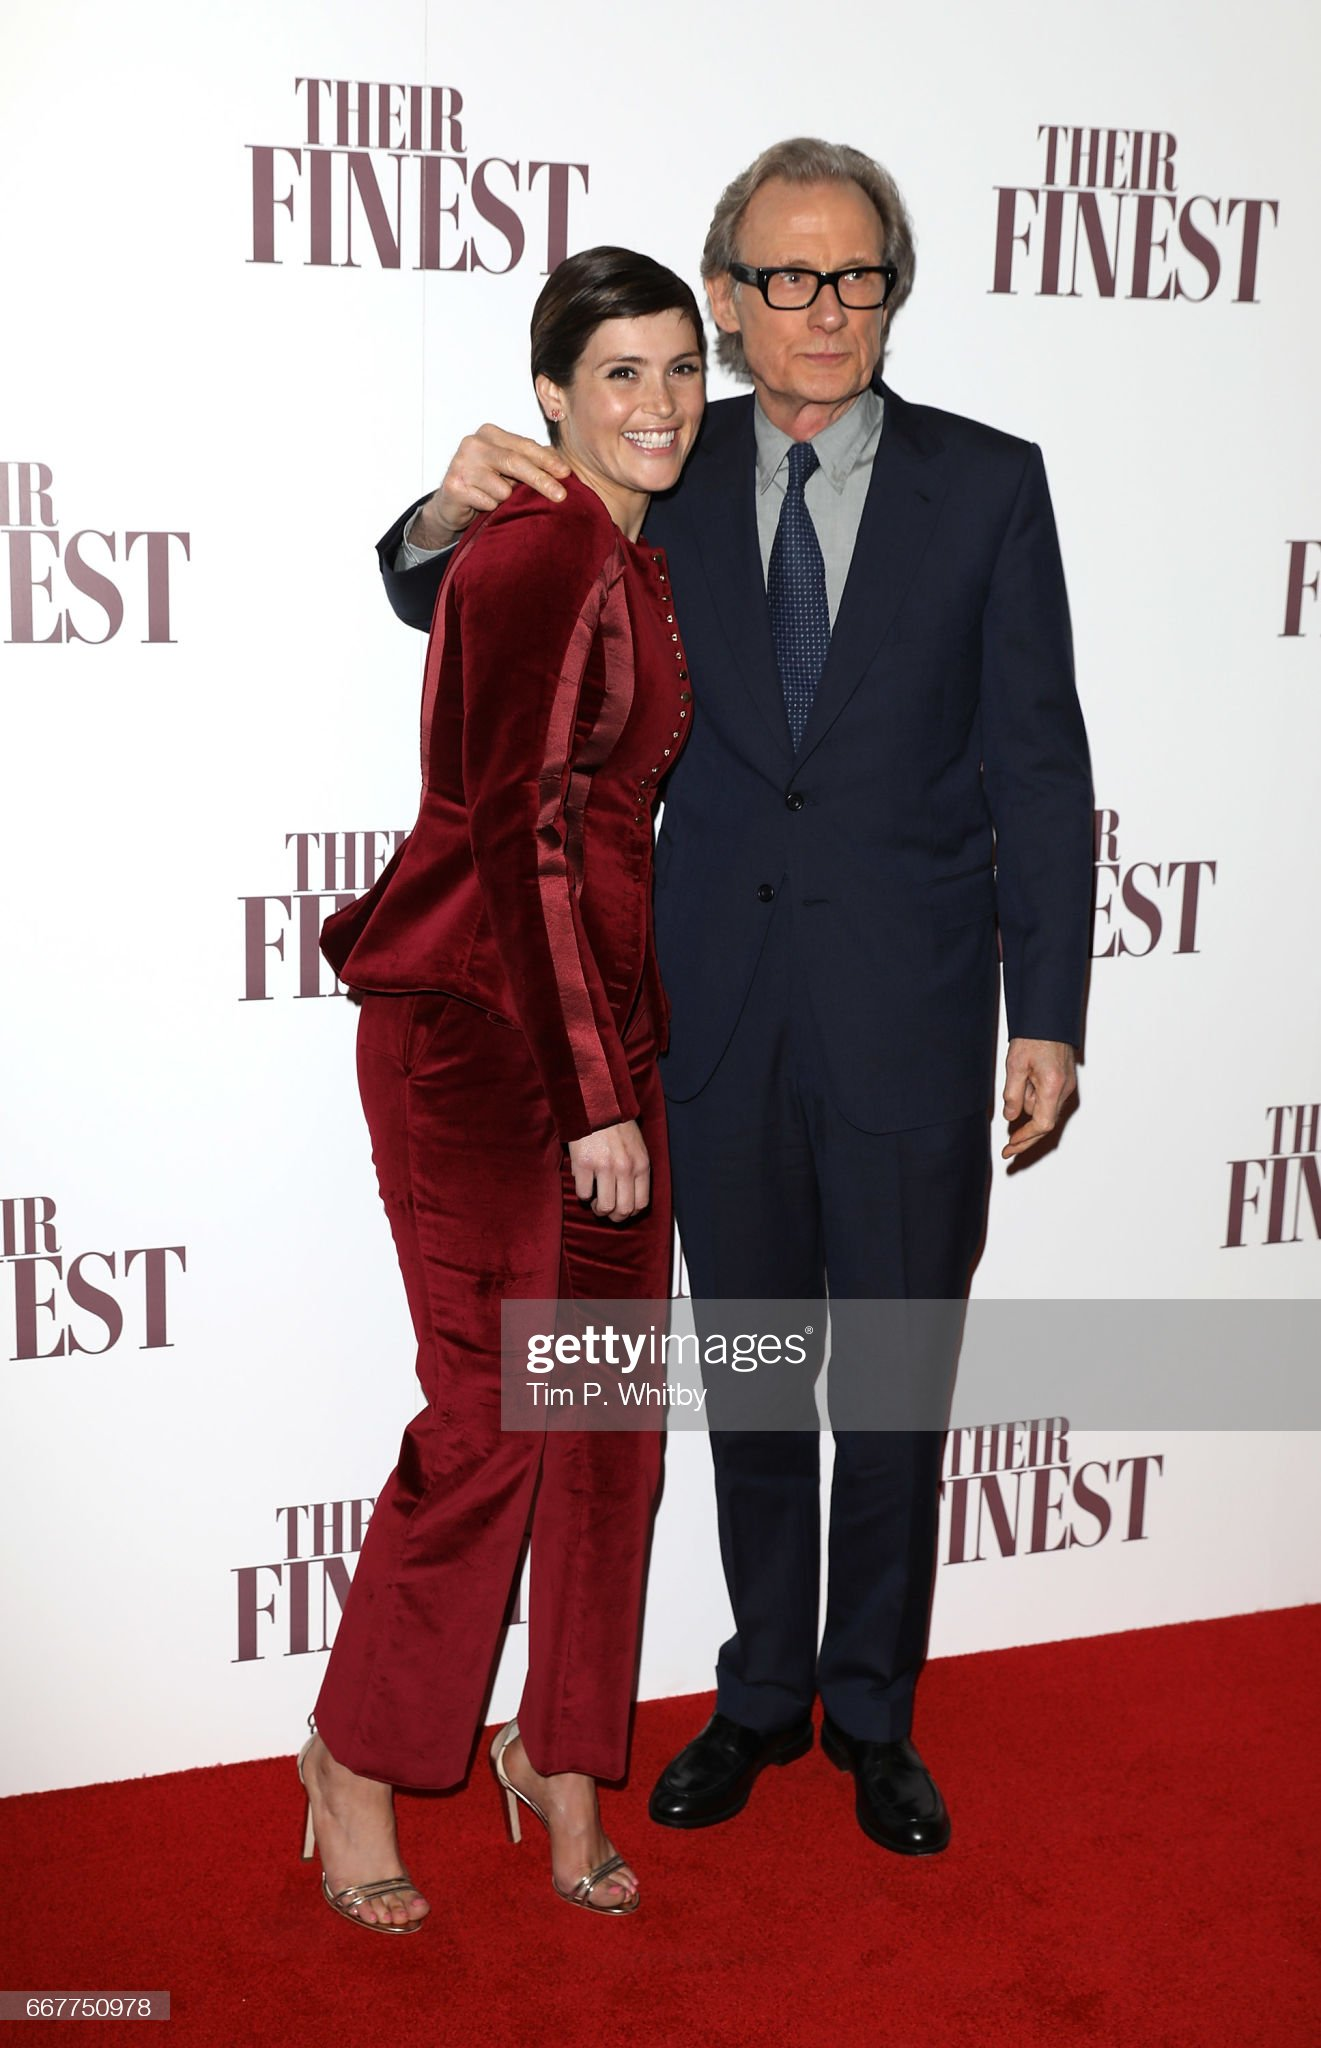 gemma-arterton-and-bill-nighy-attend-a-special-presentation-screening-picture-id667750978